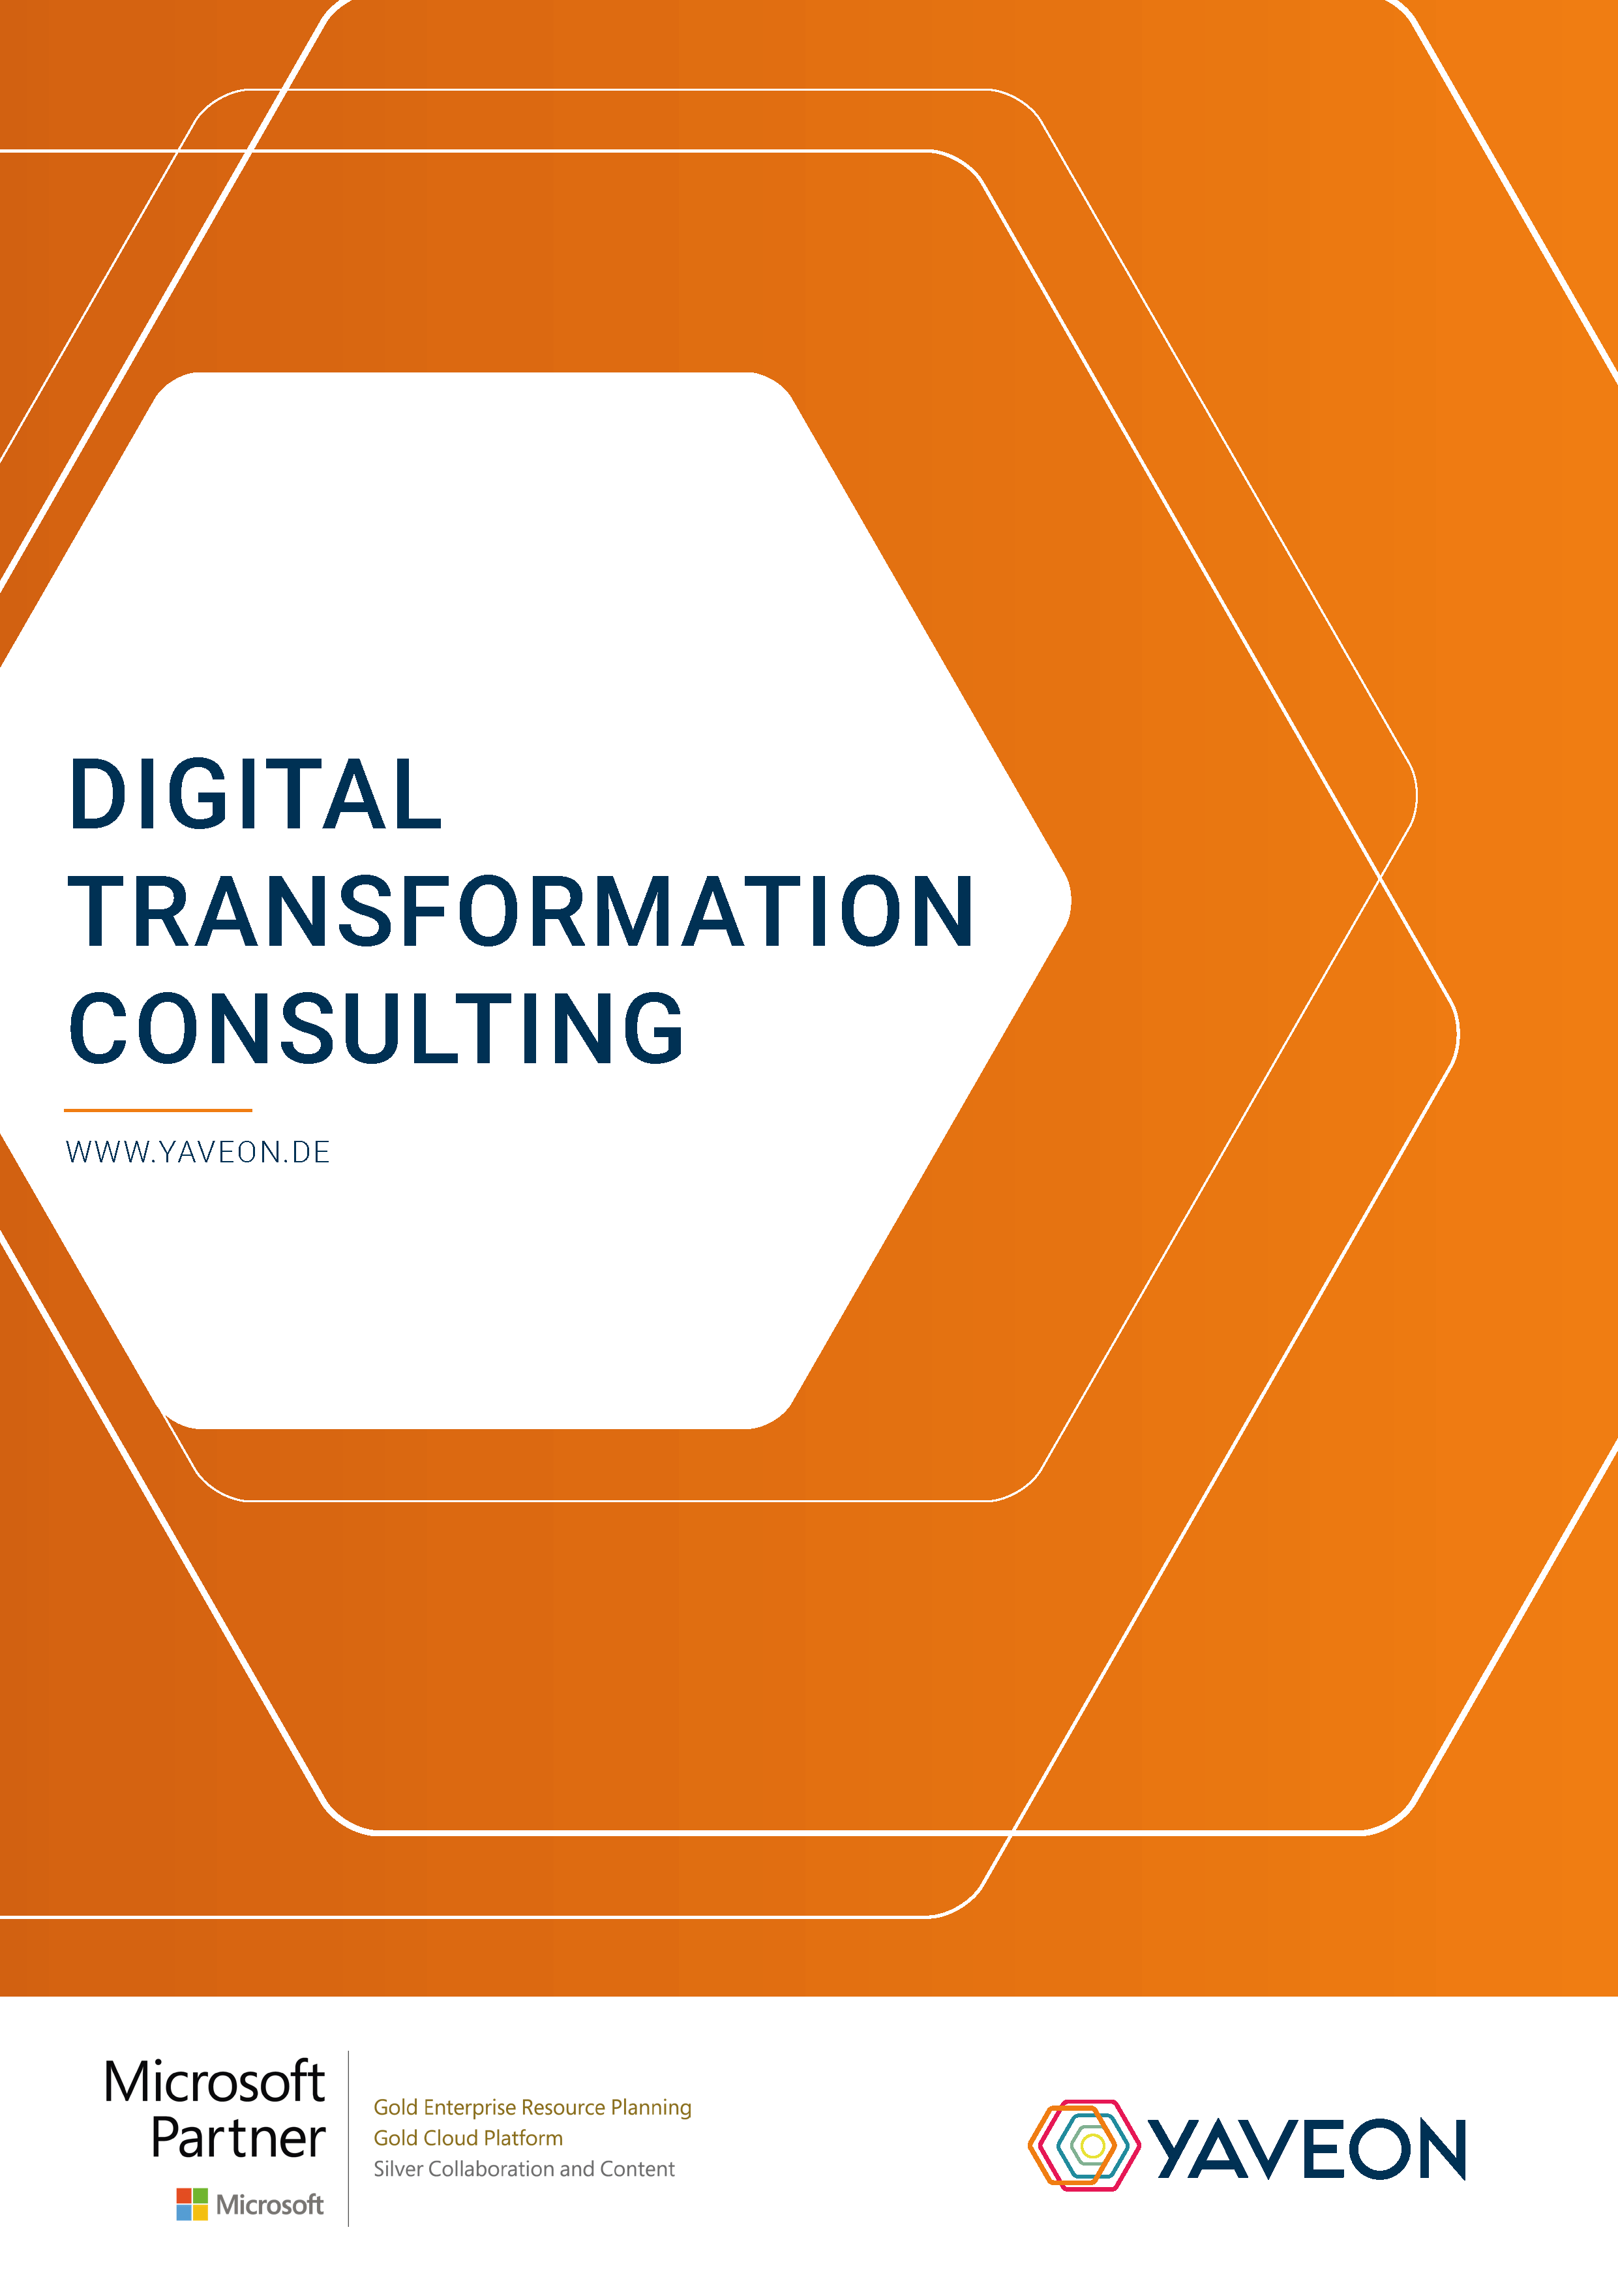 Vorschau Digital Transformation Consulting Factsheet